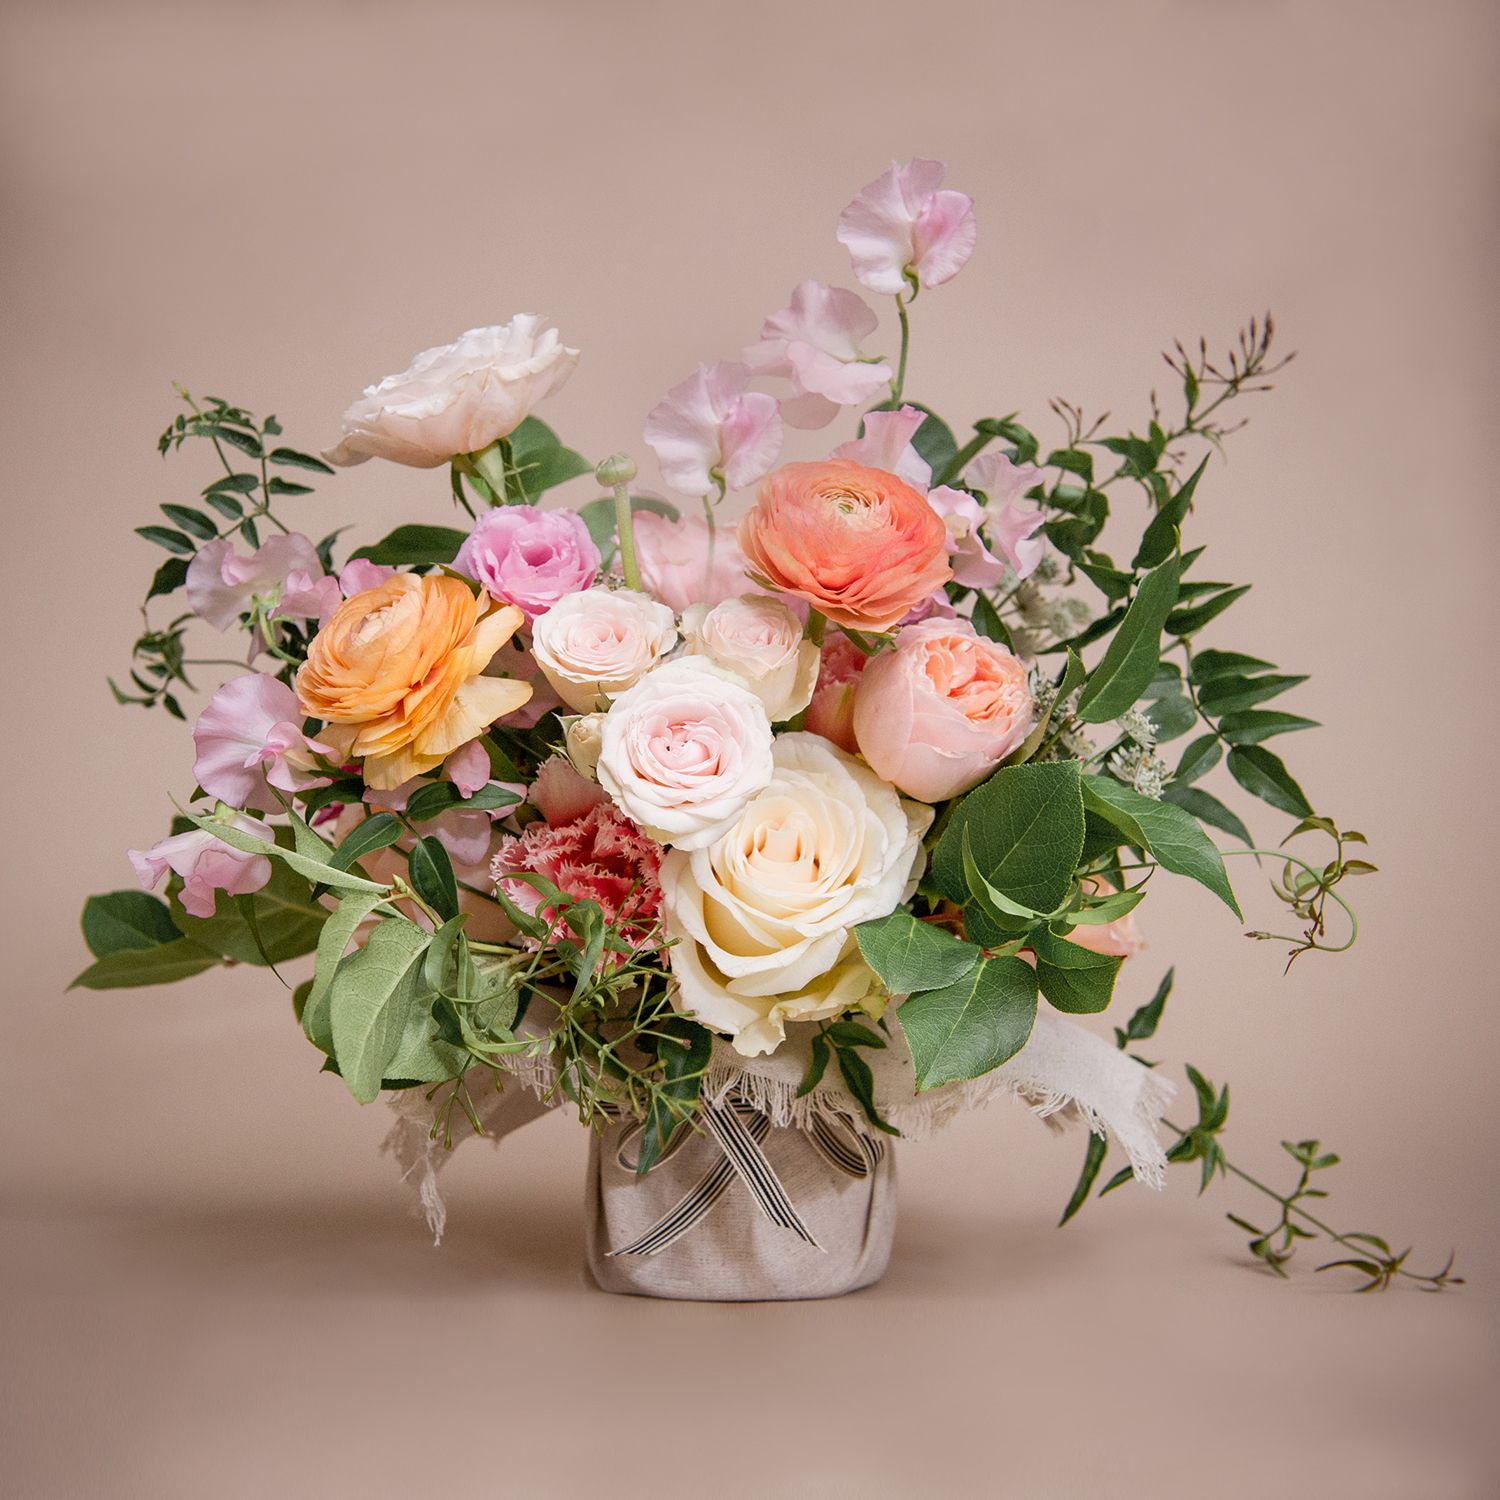 Blink Of Dawn Designs By Ahn Nyc Florist In 2020 Flower Bouquet Wedding Wedding Flower Arrangements Garden Wedding Flowers Arrangements